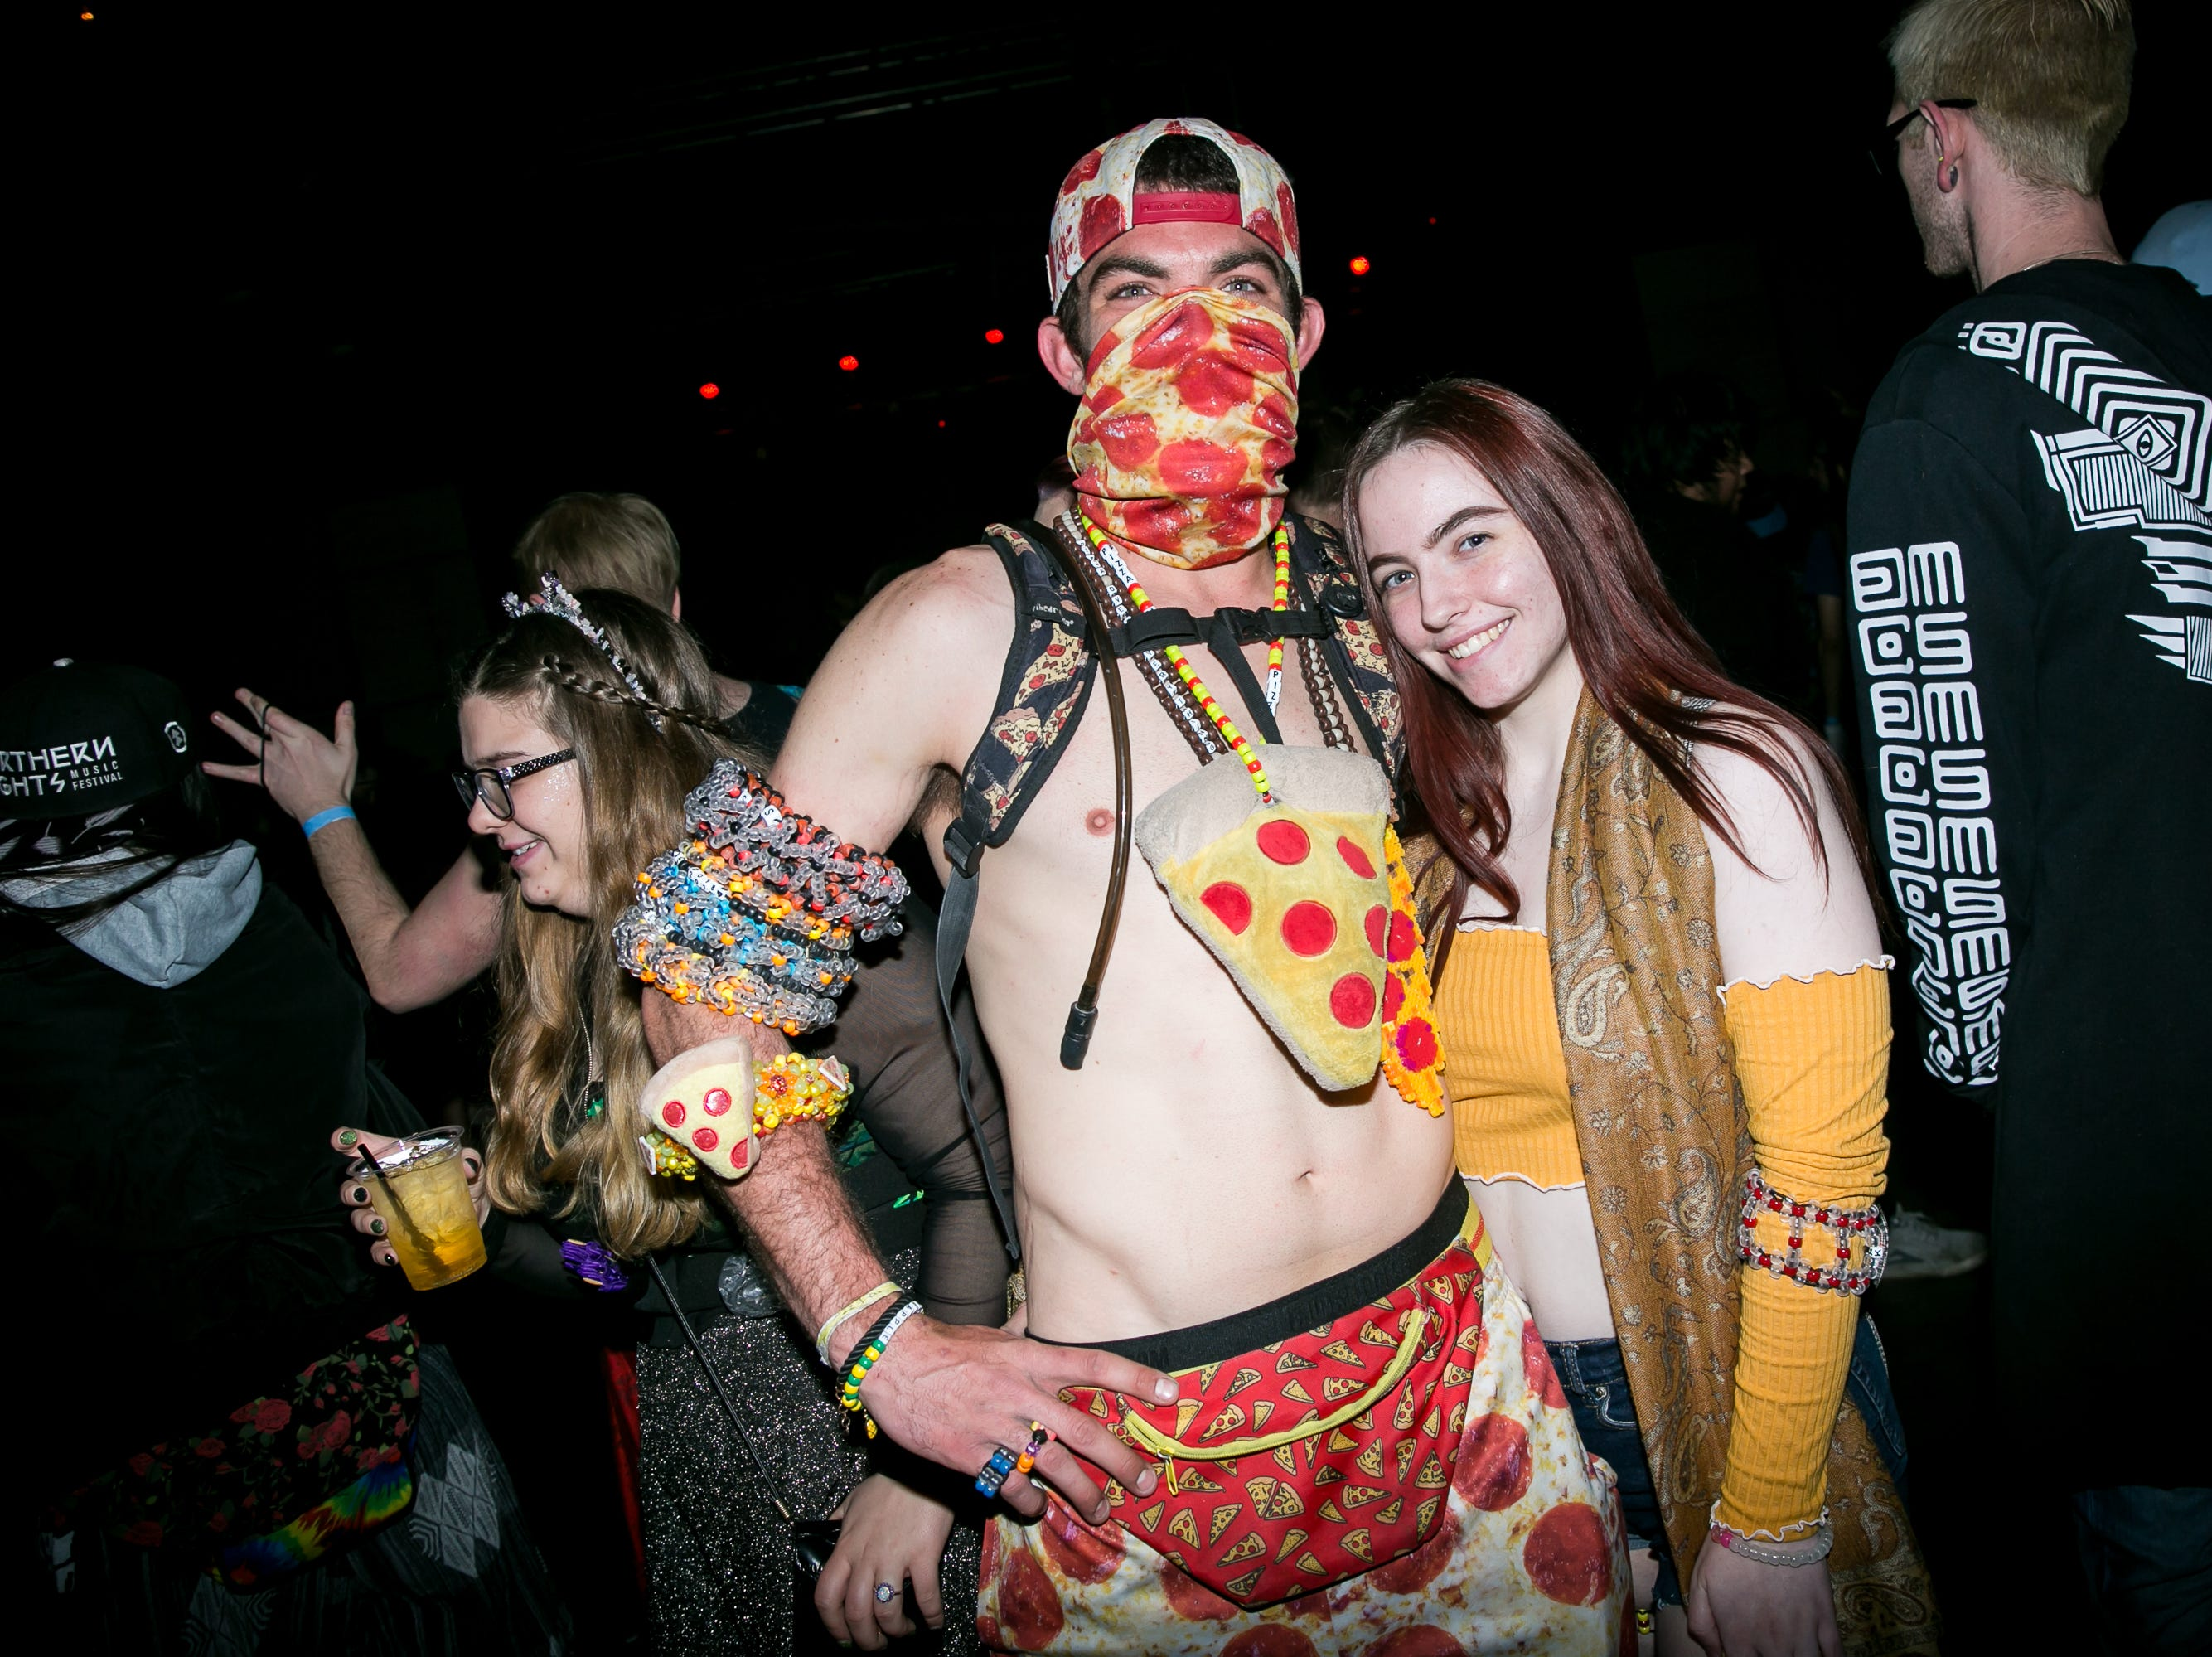 This pizza outfit was amazing at the Full Moon Festival at the Pressroom on March 23, 2019.